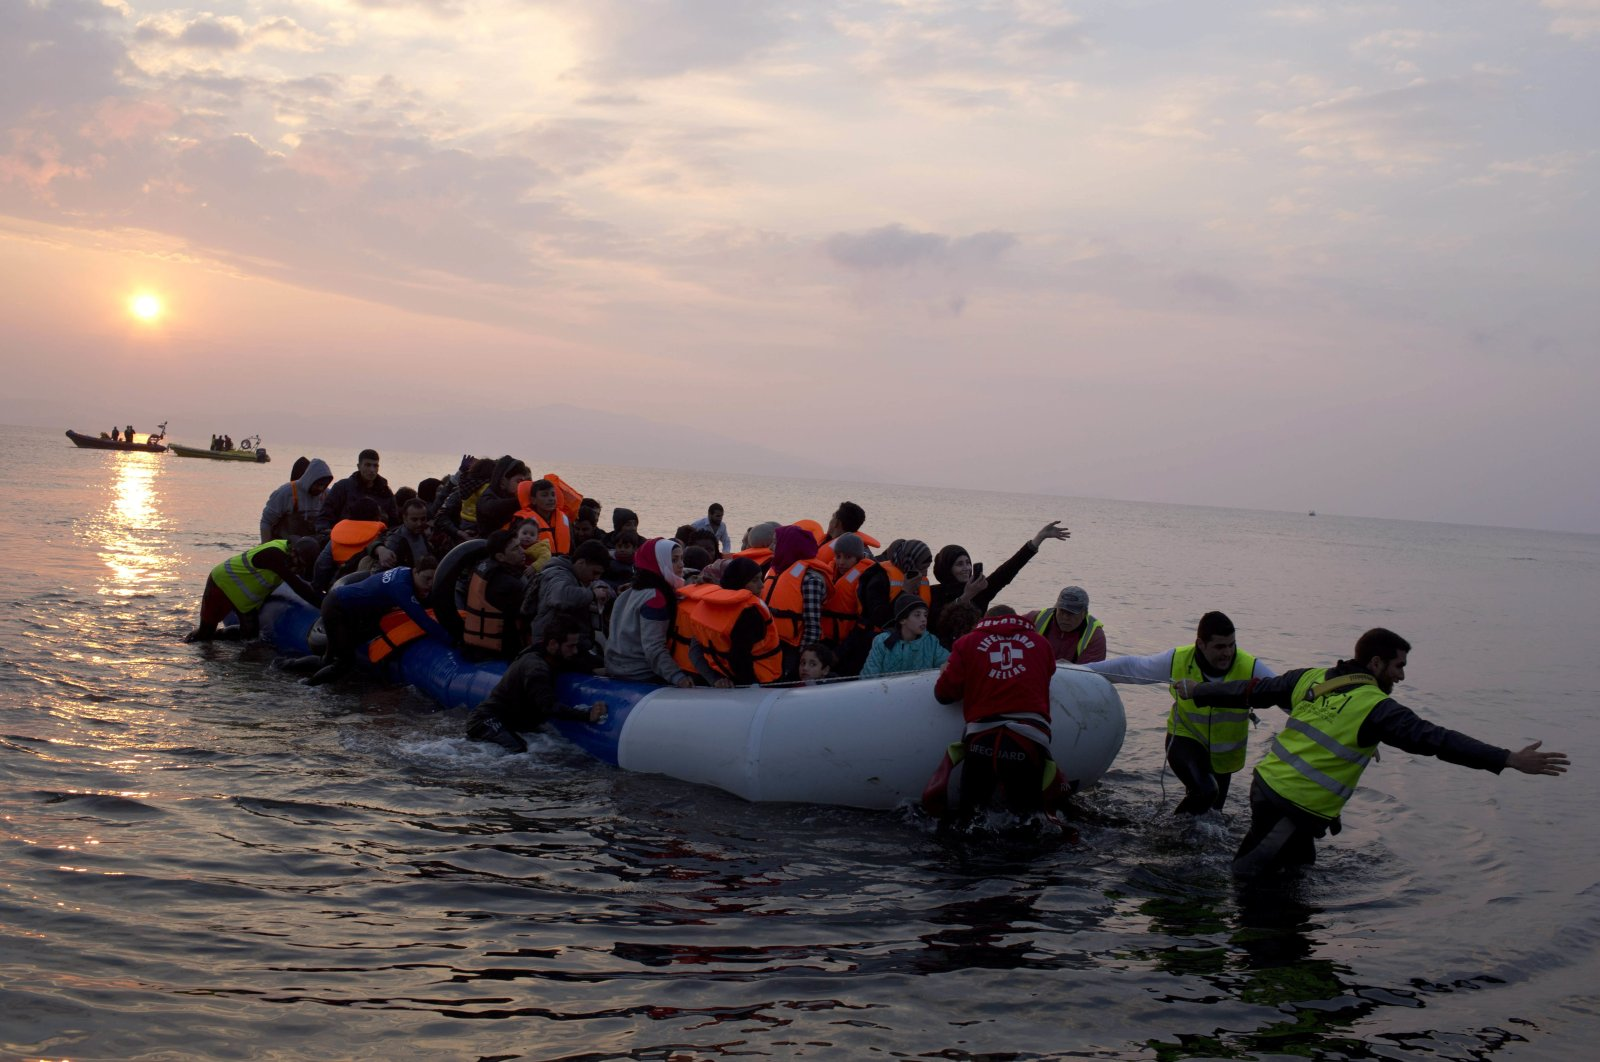 Volunteers help migrants and refugees on a dingy as they arrive at the shore of the northeastern Greek island of Lesbos, after crossing the Aegean sea from Turkey, March 20, 2016. (AP Photo)